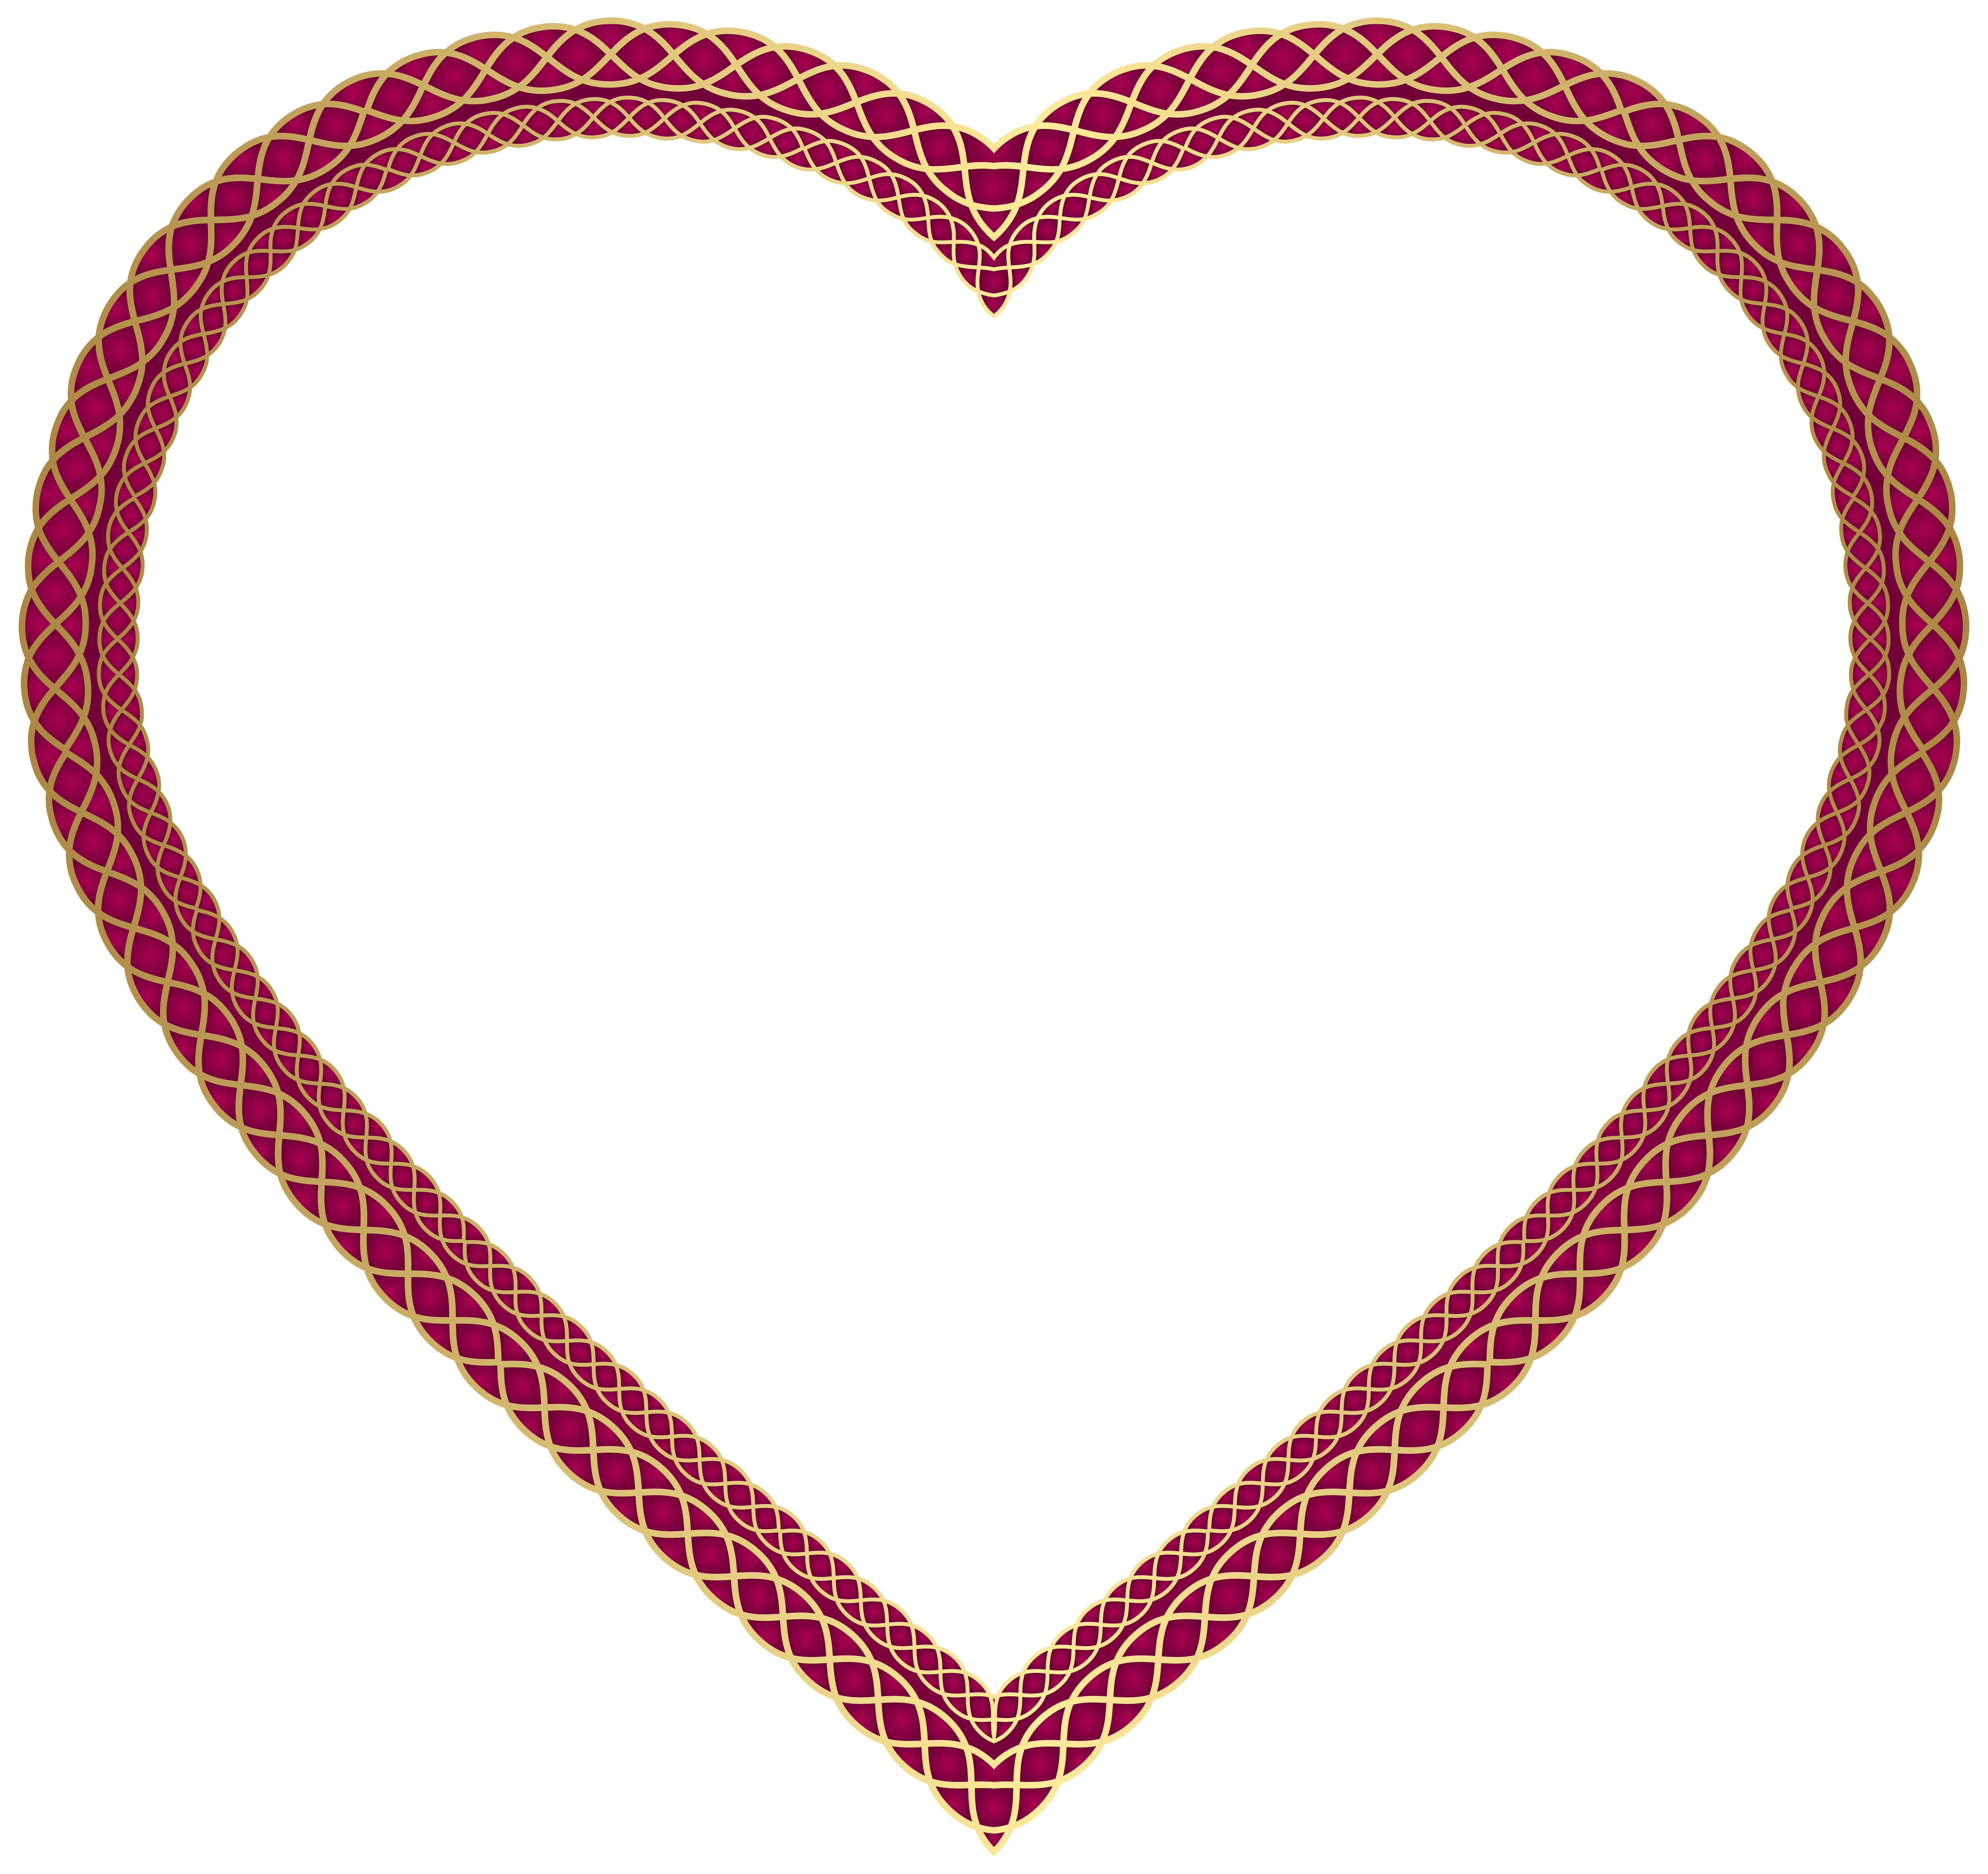 Clip art gallery yopriceville. Heart shape png transparent library